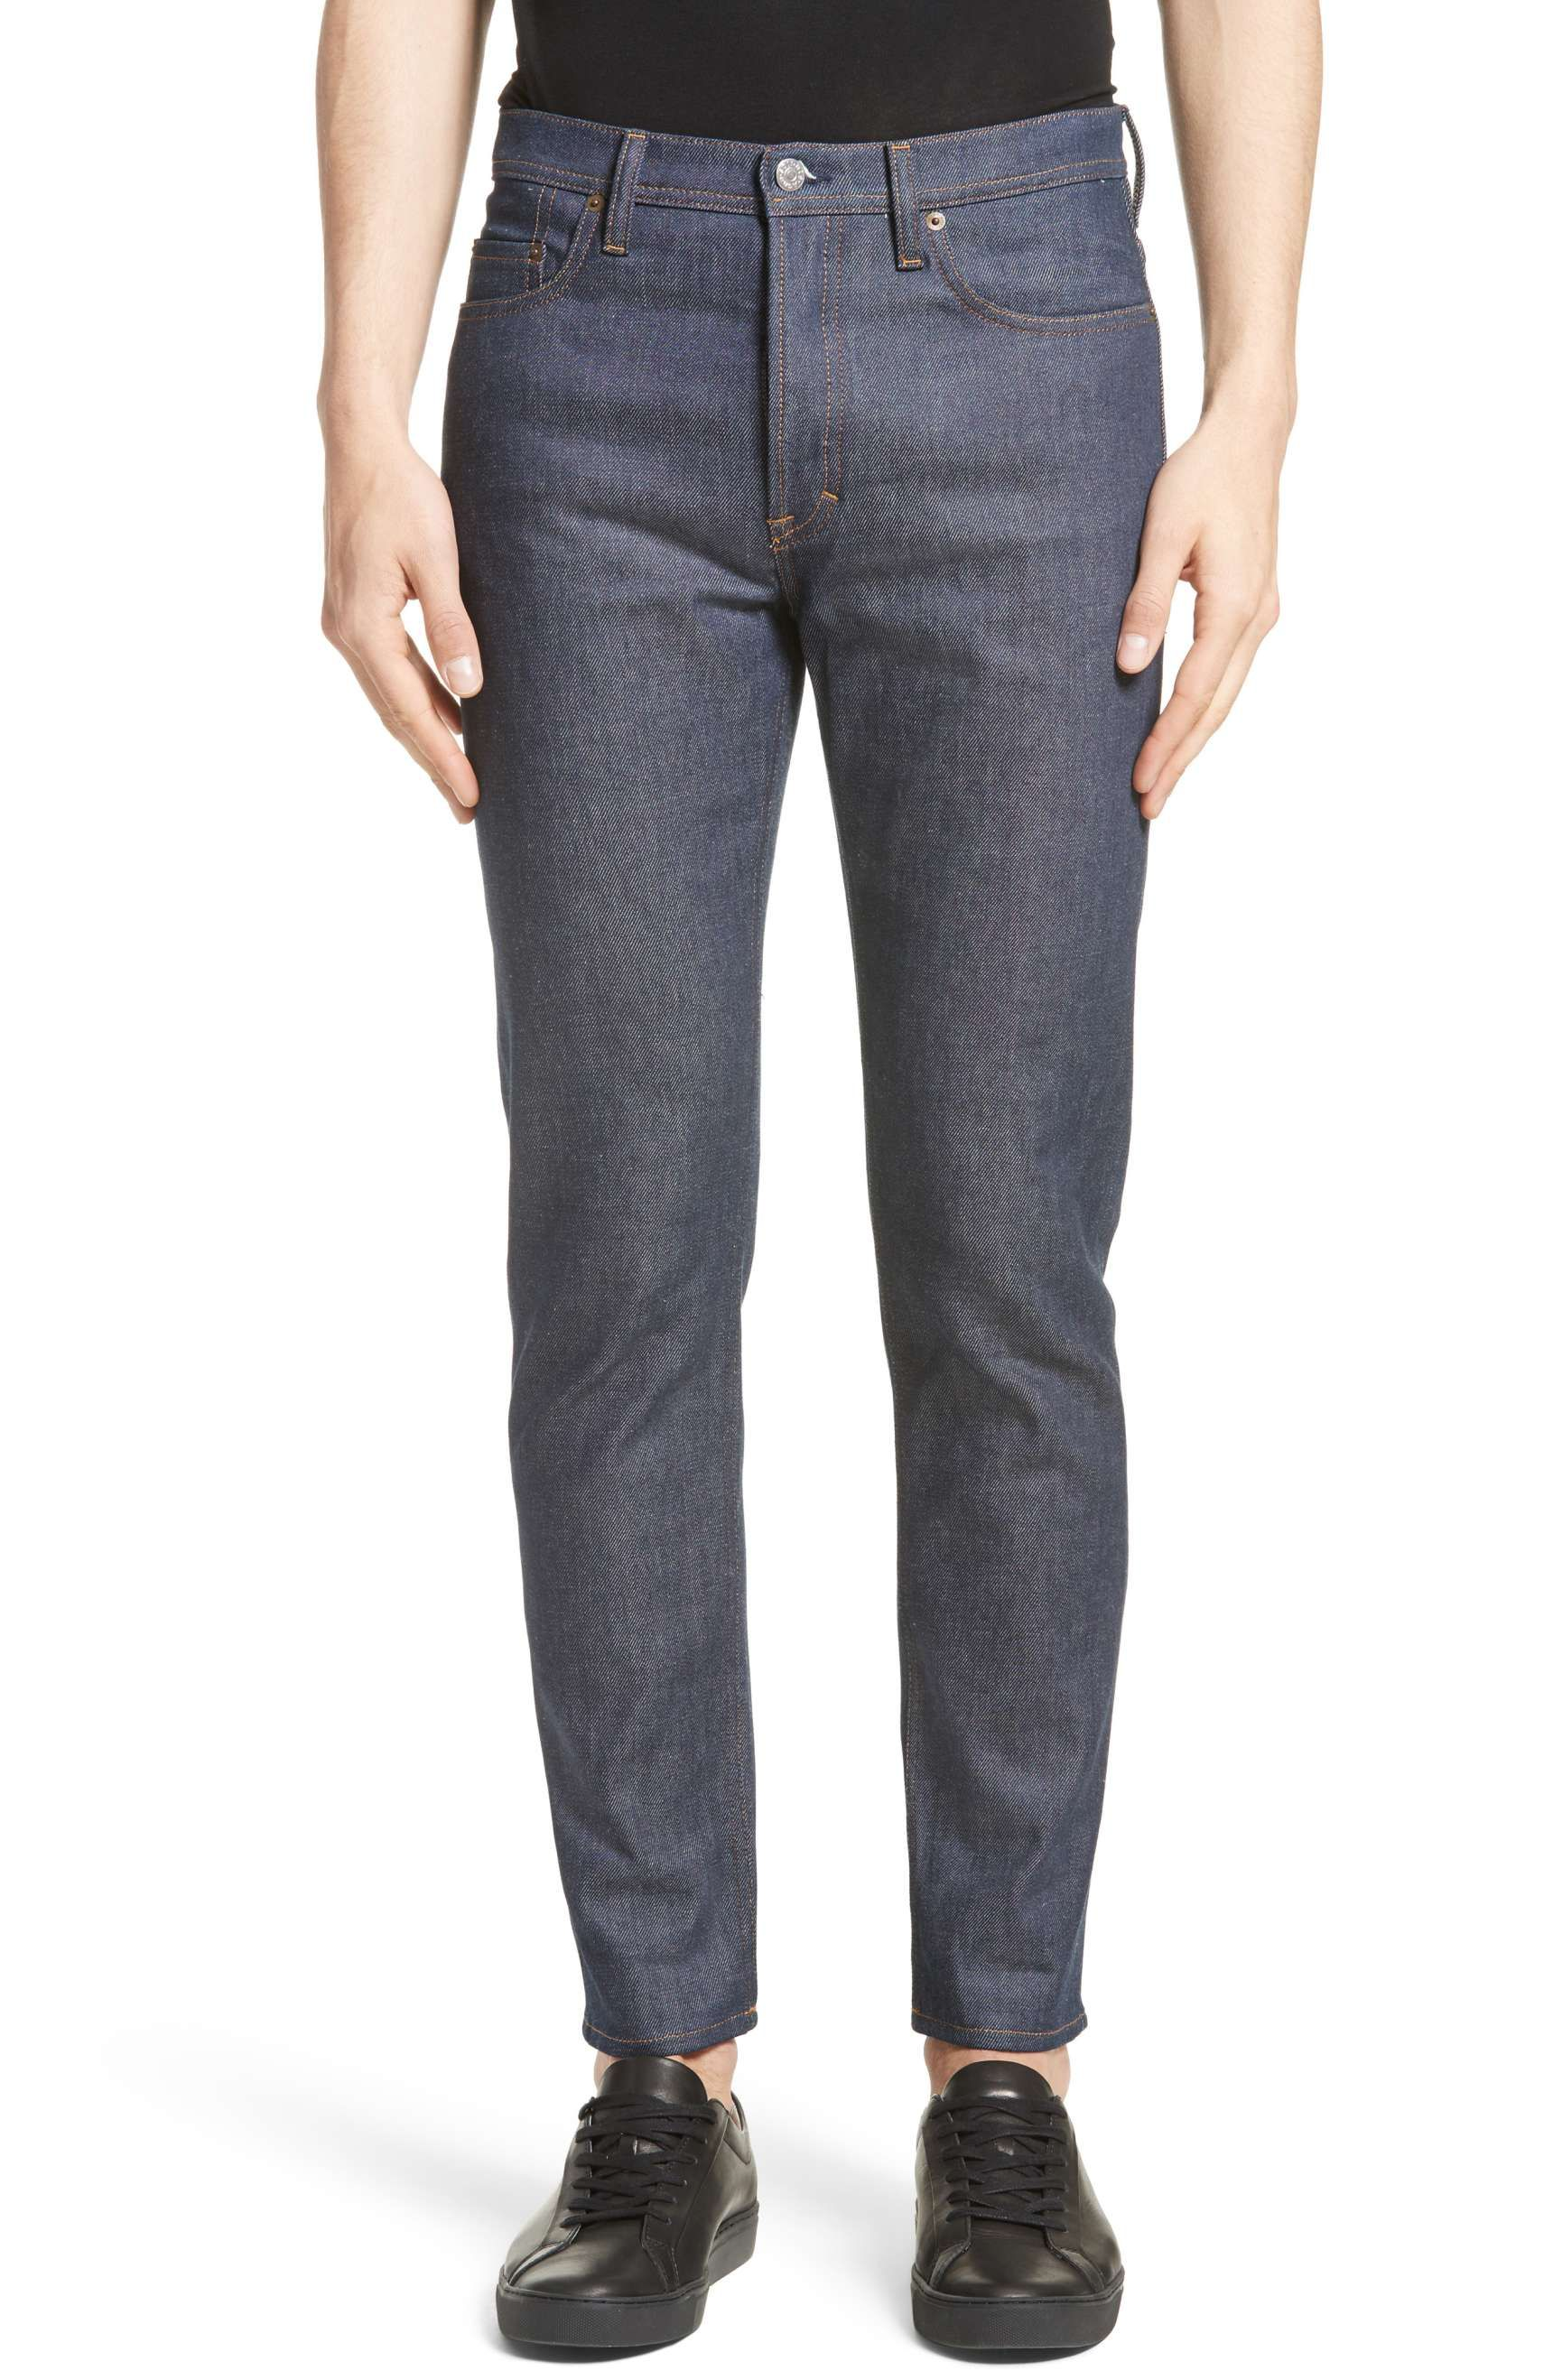 b7cea8655ce4ed Best New Jeans for Men 2017: Mens Acne Studio Tapered Leg Indigo Denim 2018